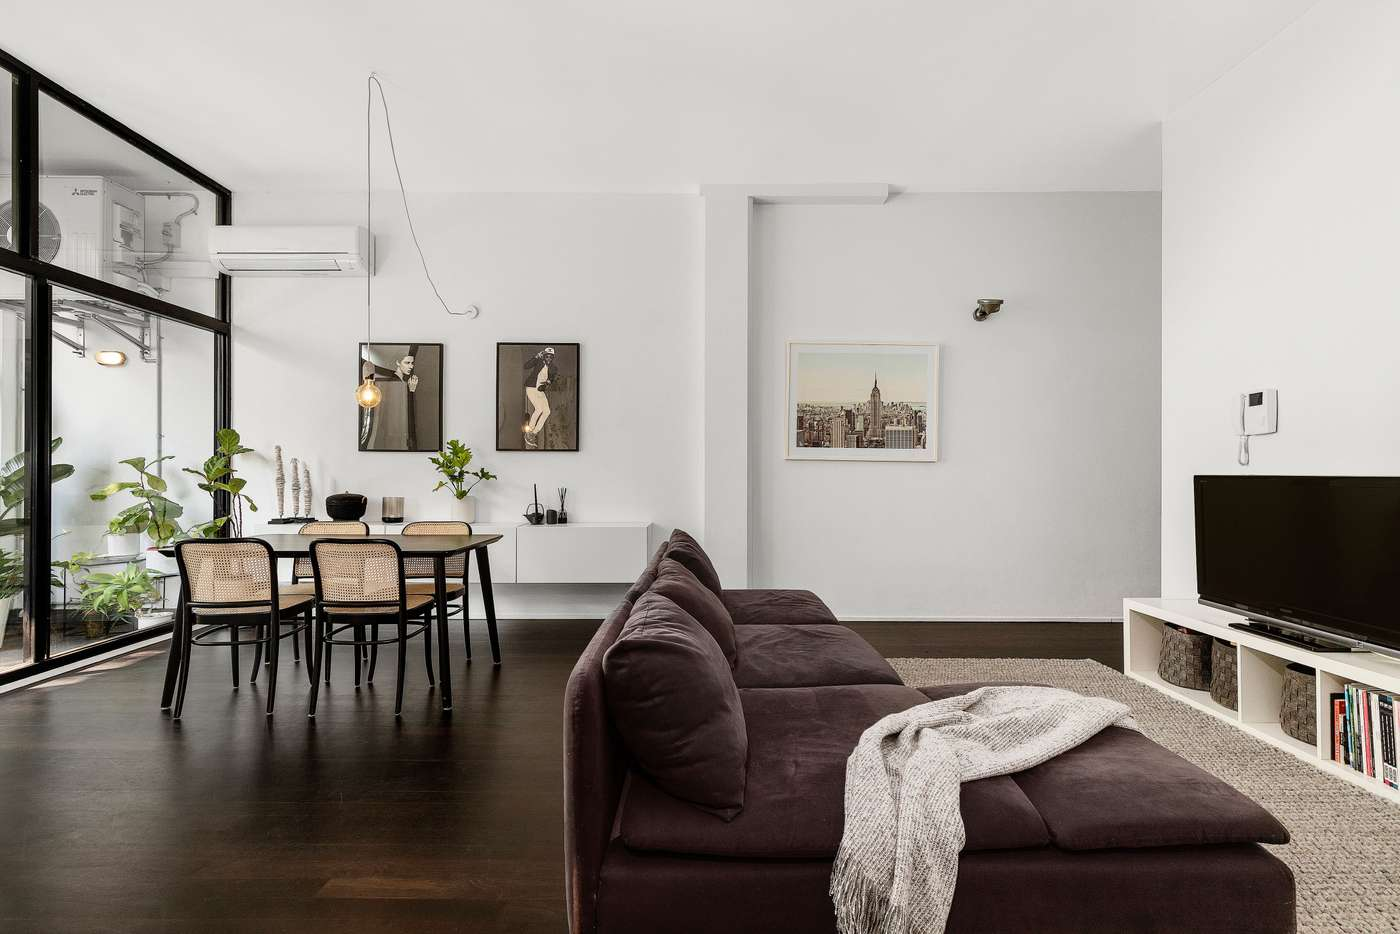 Main view of Homely apartment listing, 29/277 Crown Street, Surry Hills NSW 2010